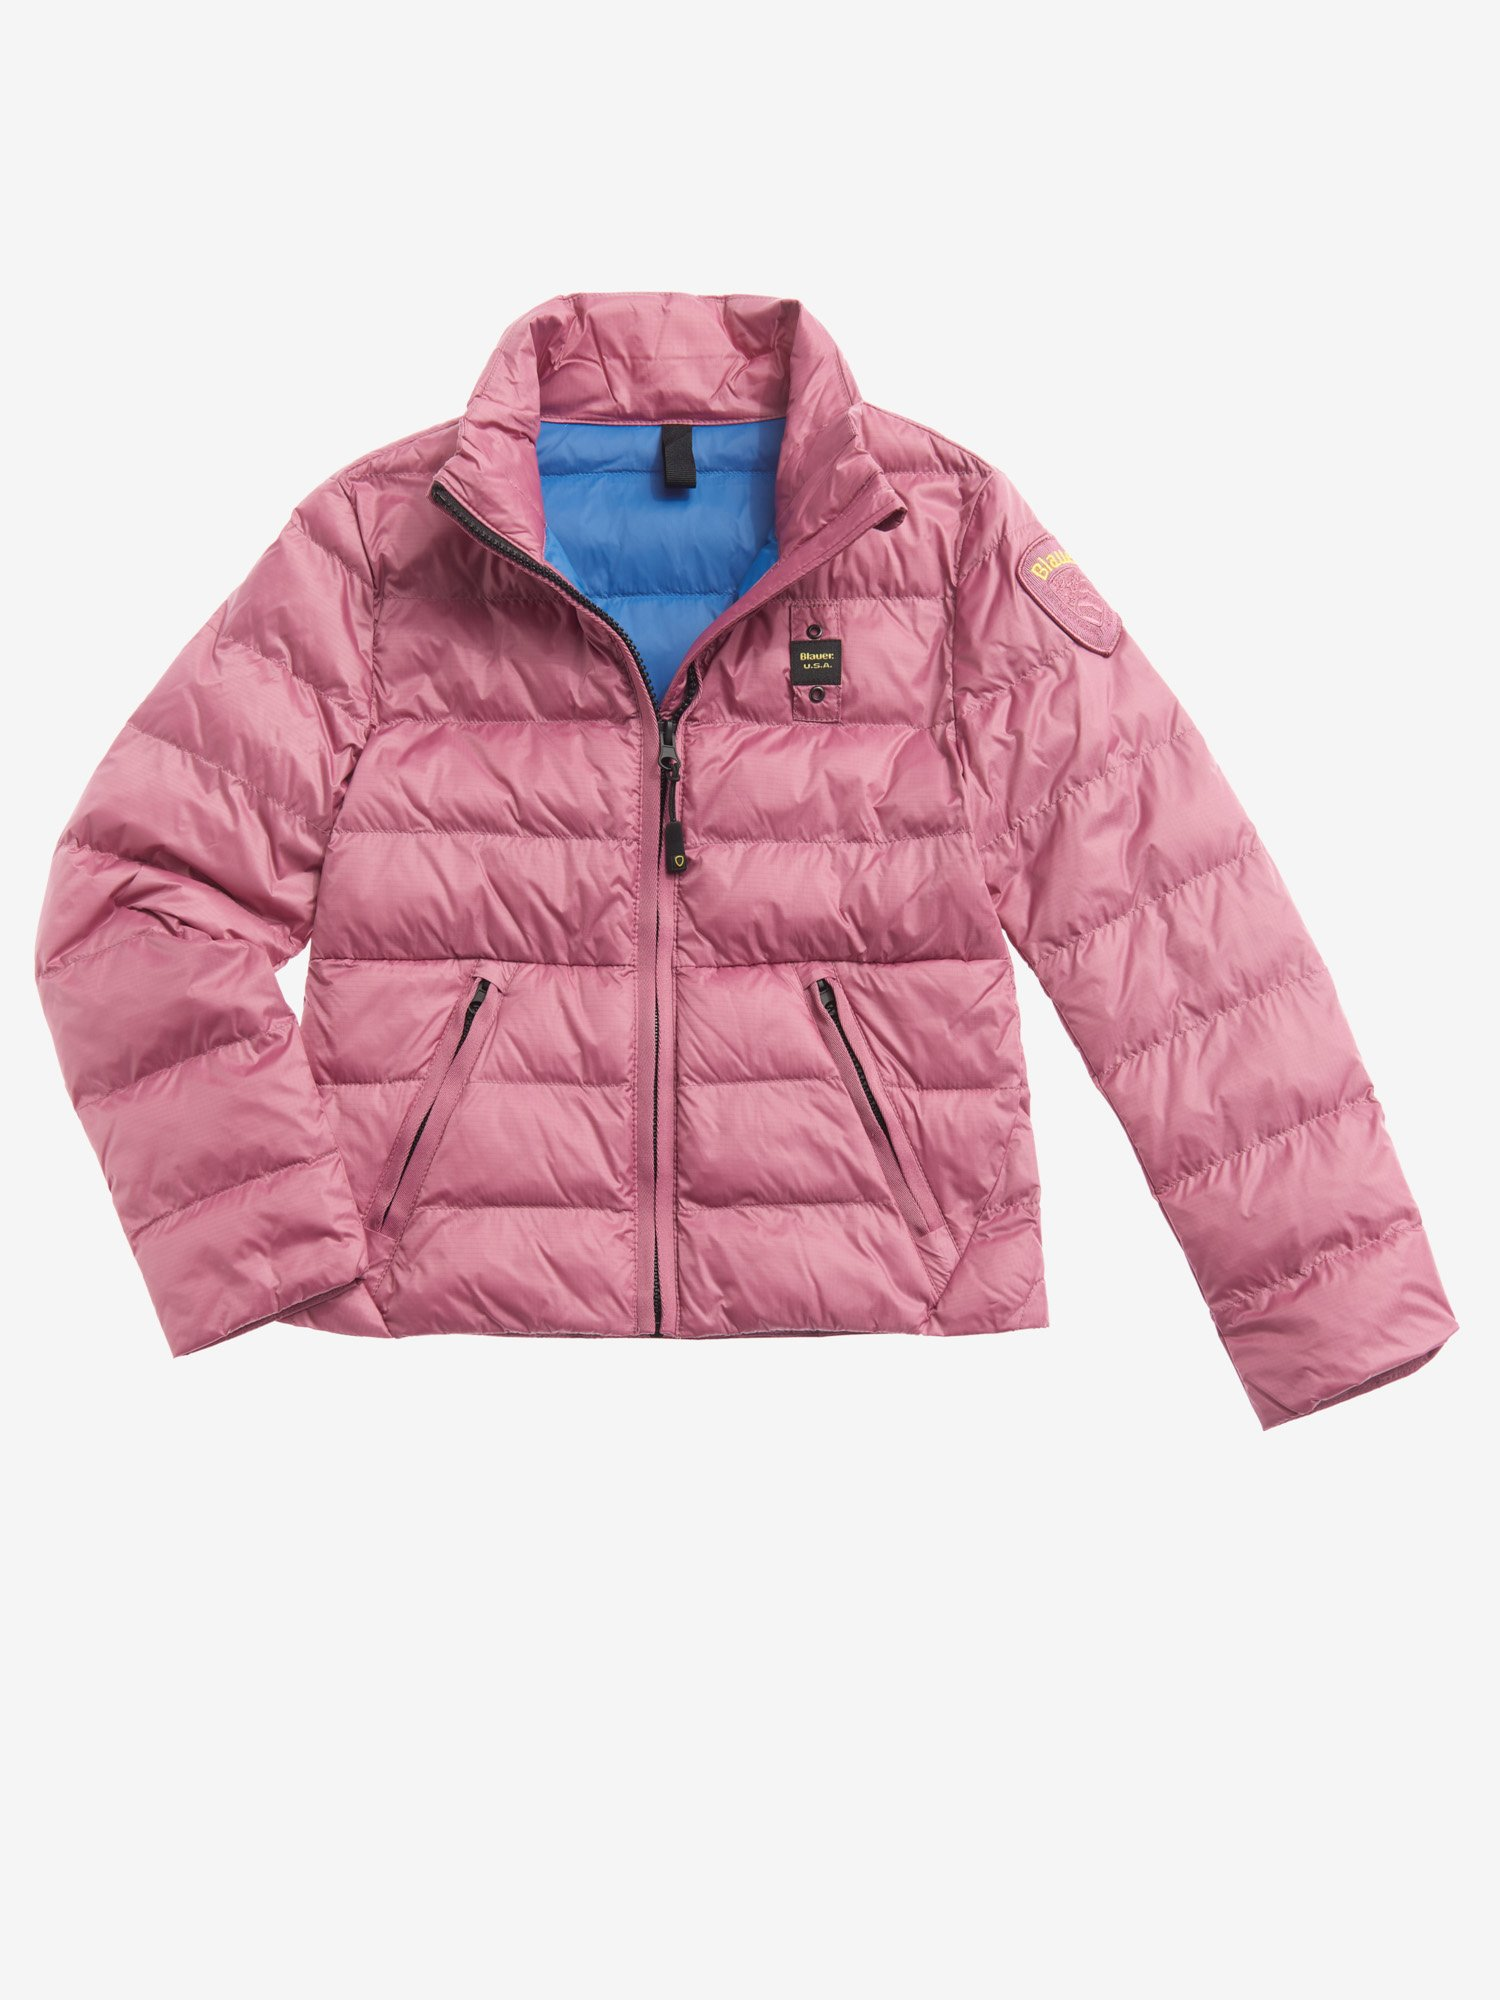 Blauer - SHEILA DOWN JACKET WITH ECO PADDING - Pink Heather - Blauer